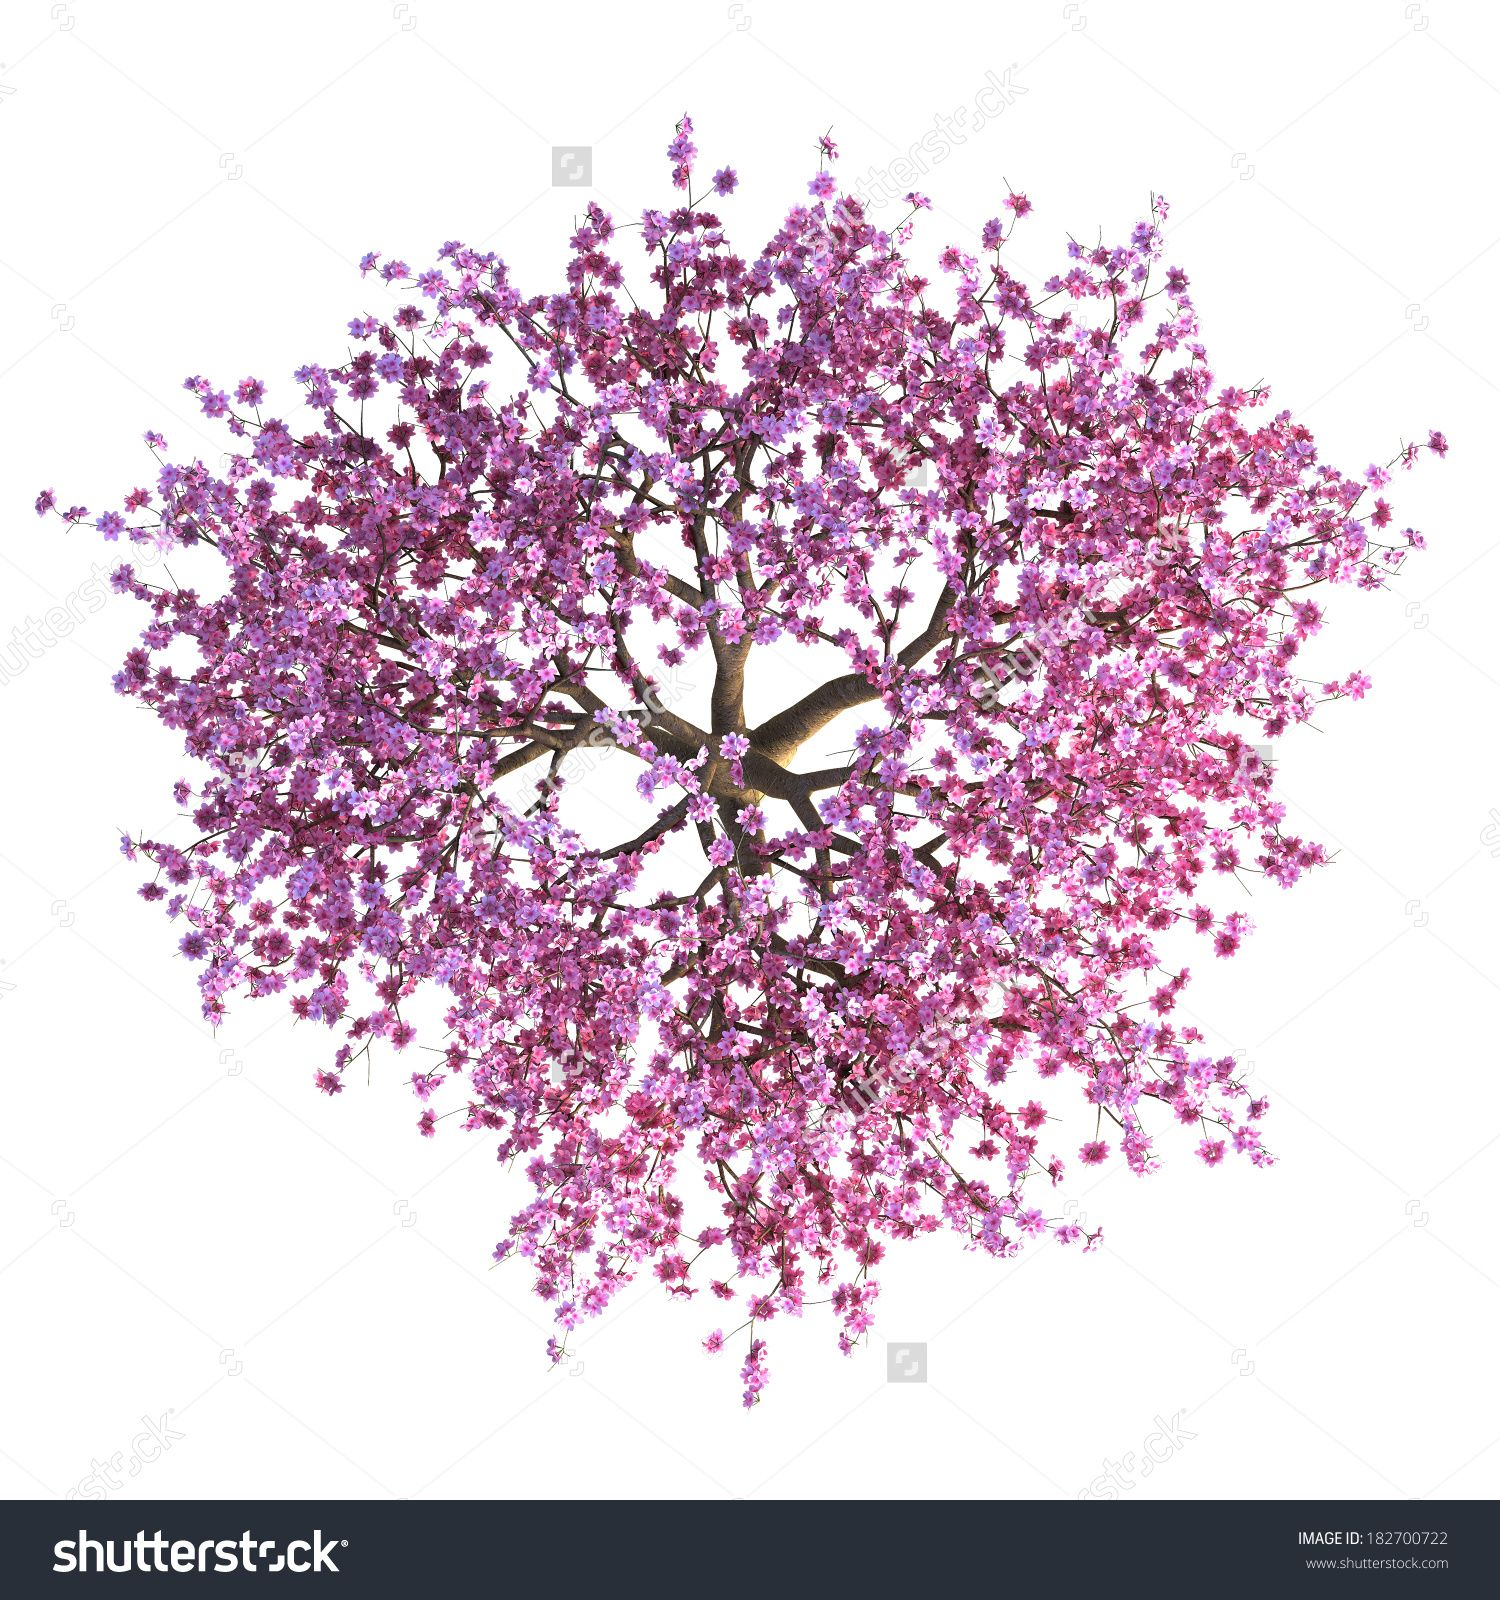 diagram the parts of cherry blossom tree canine skull top view google search